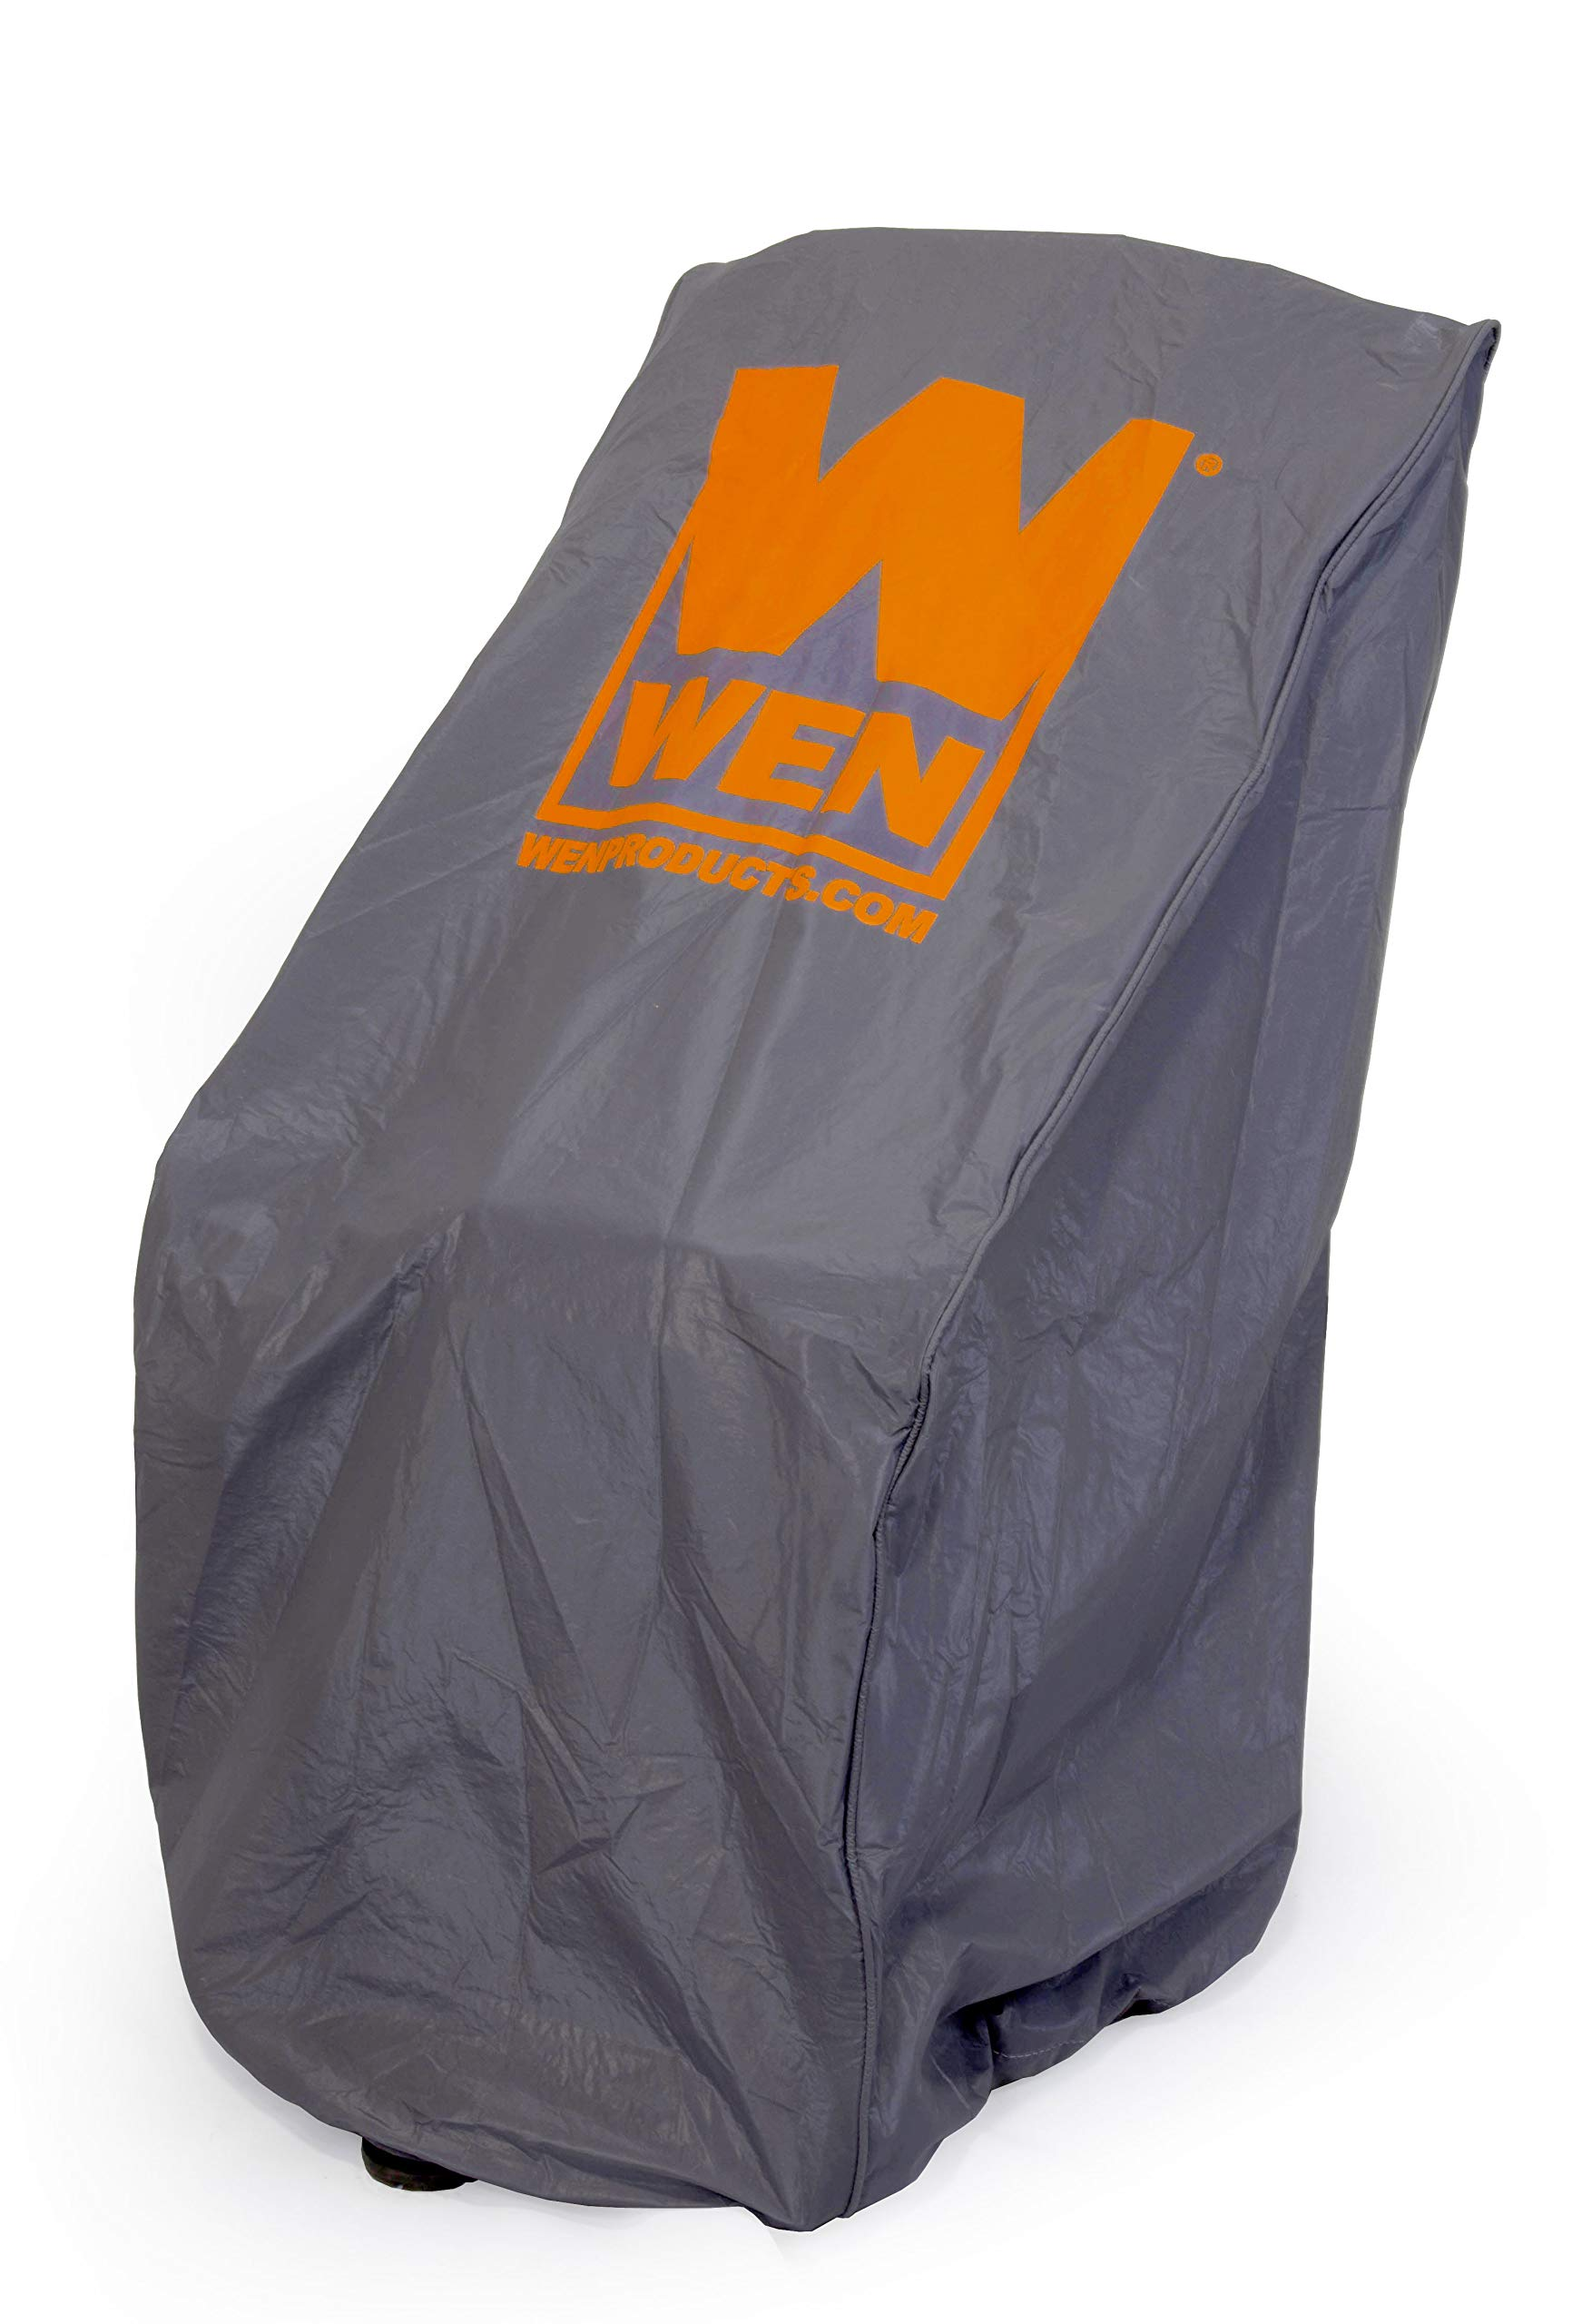 WEN PW31C Universal Weatherproof Pressure Washer Cover by WEN